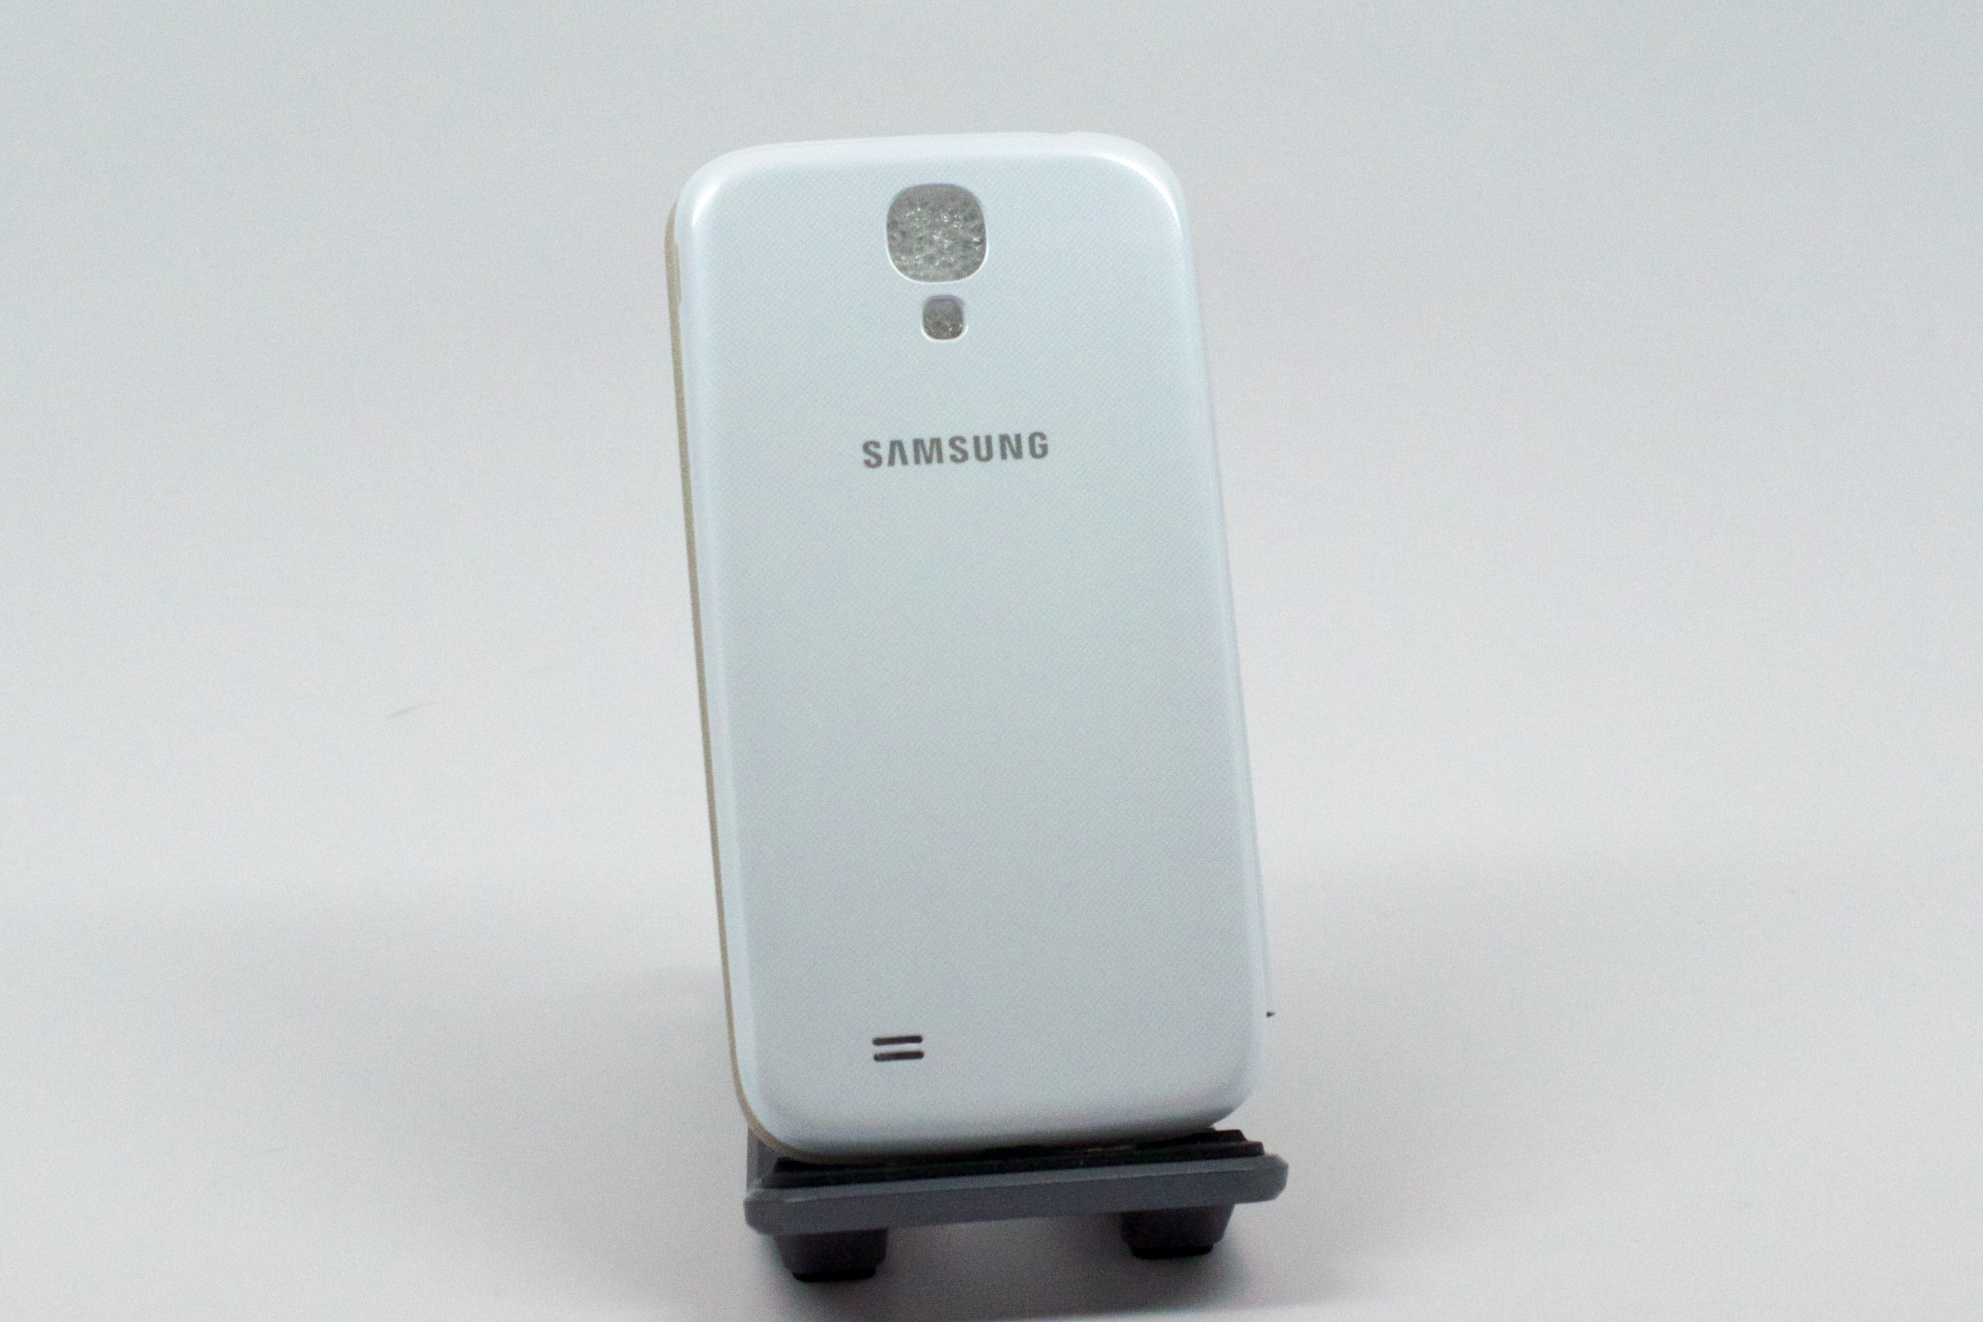 Samsung galaxy s4 flip cover hands on video samsung galaxy s4 cases official flip cover 001 ccuart Gallery